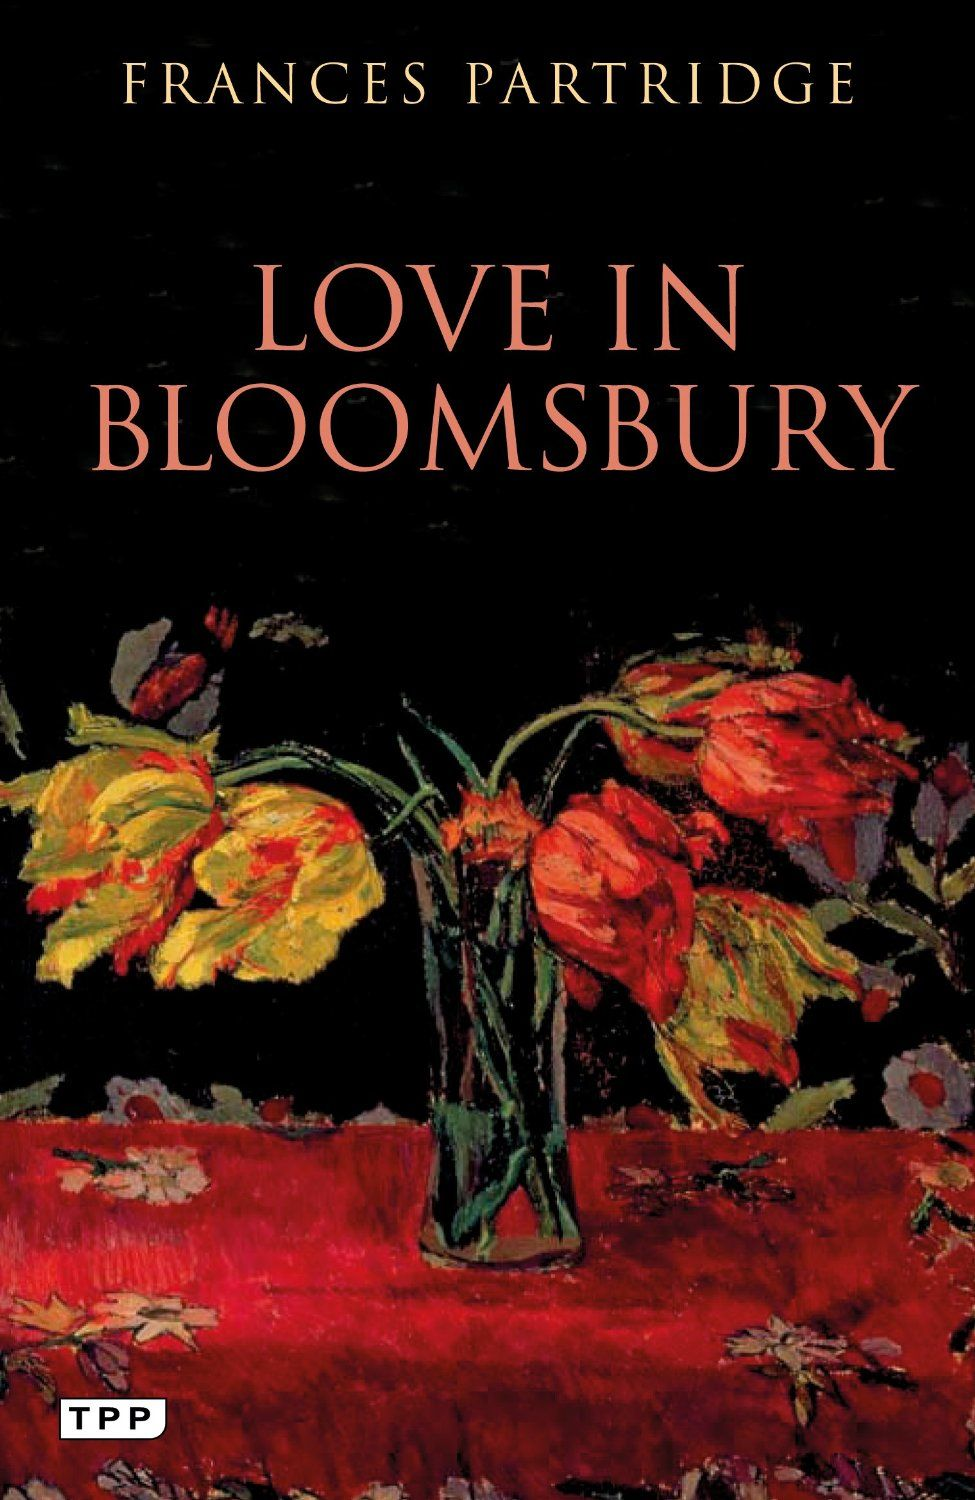 Amazon.com: Love in Bloomsbury eBook: Frances Partridge: Kindle Store